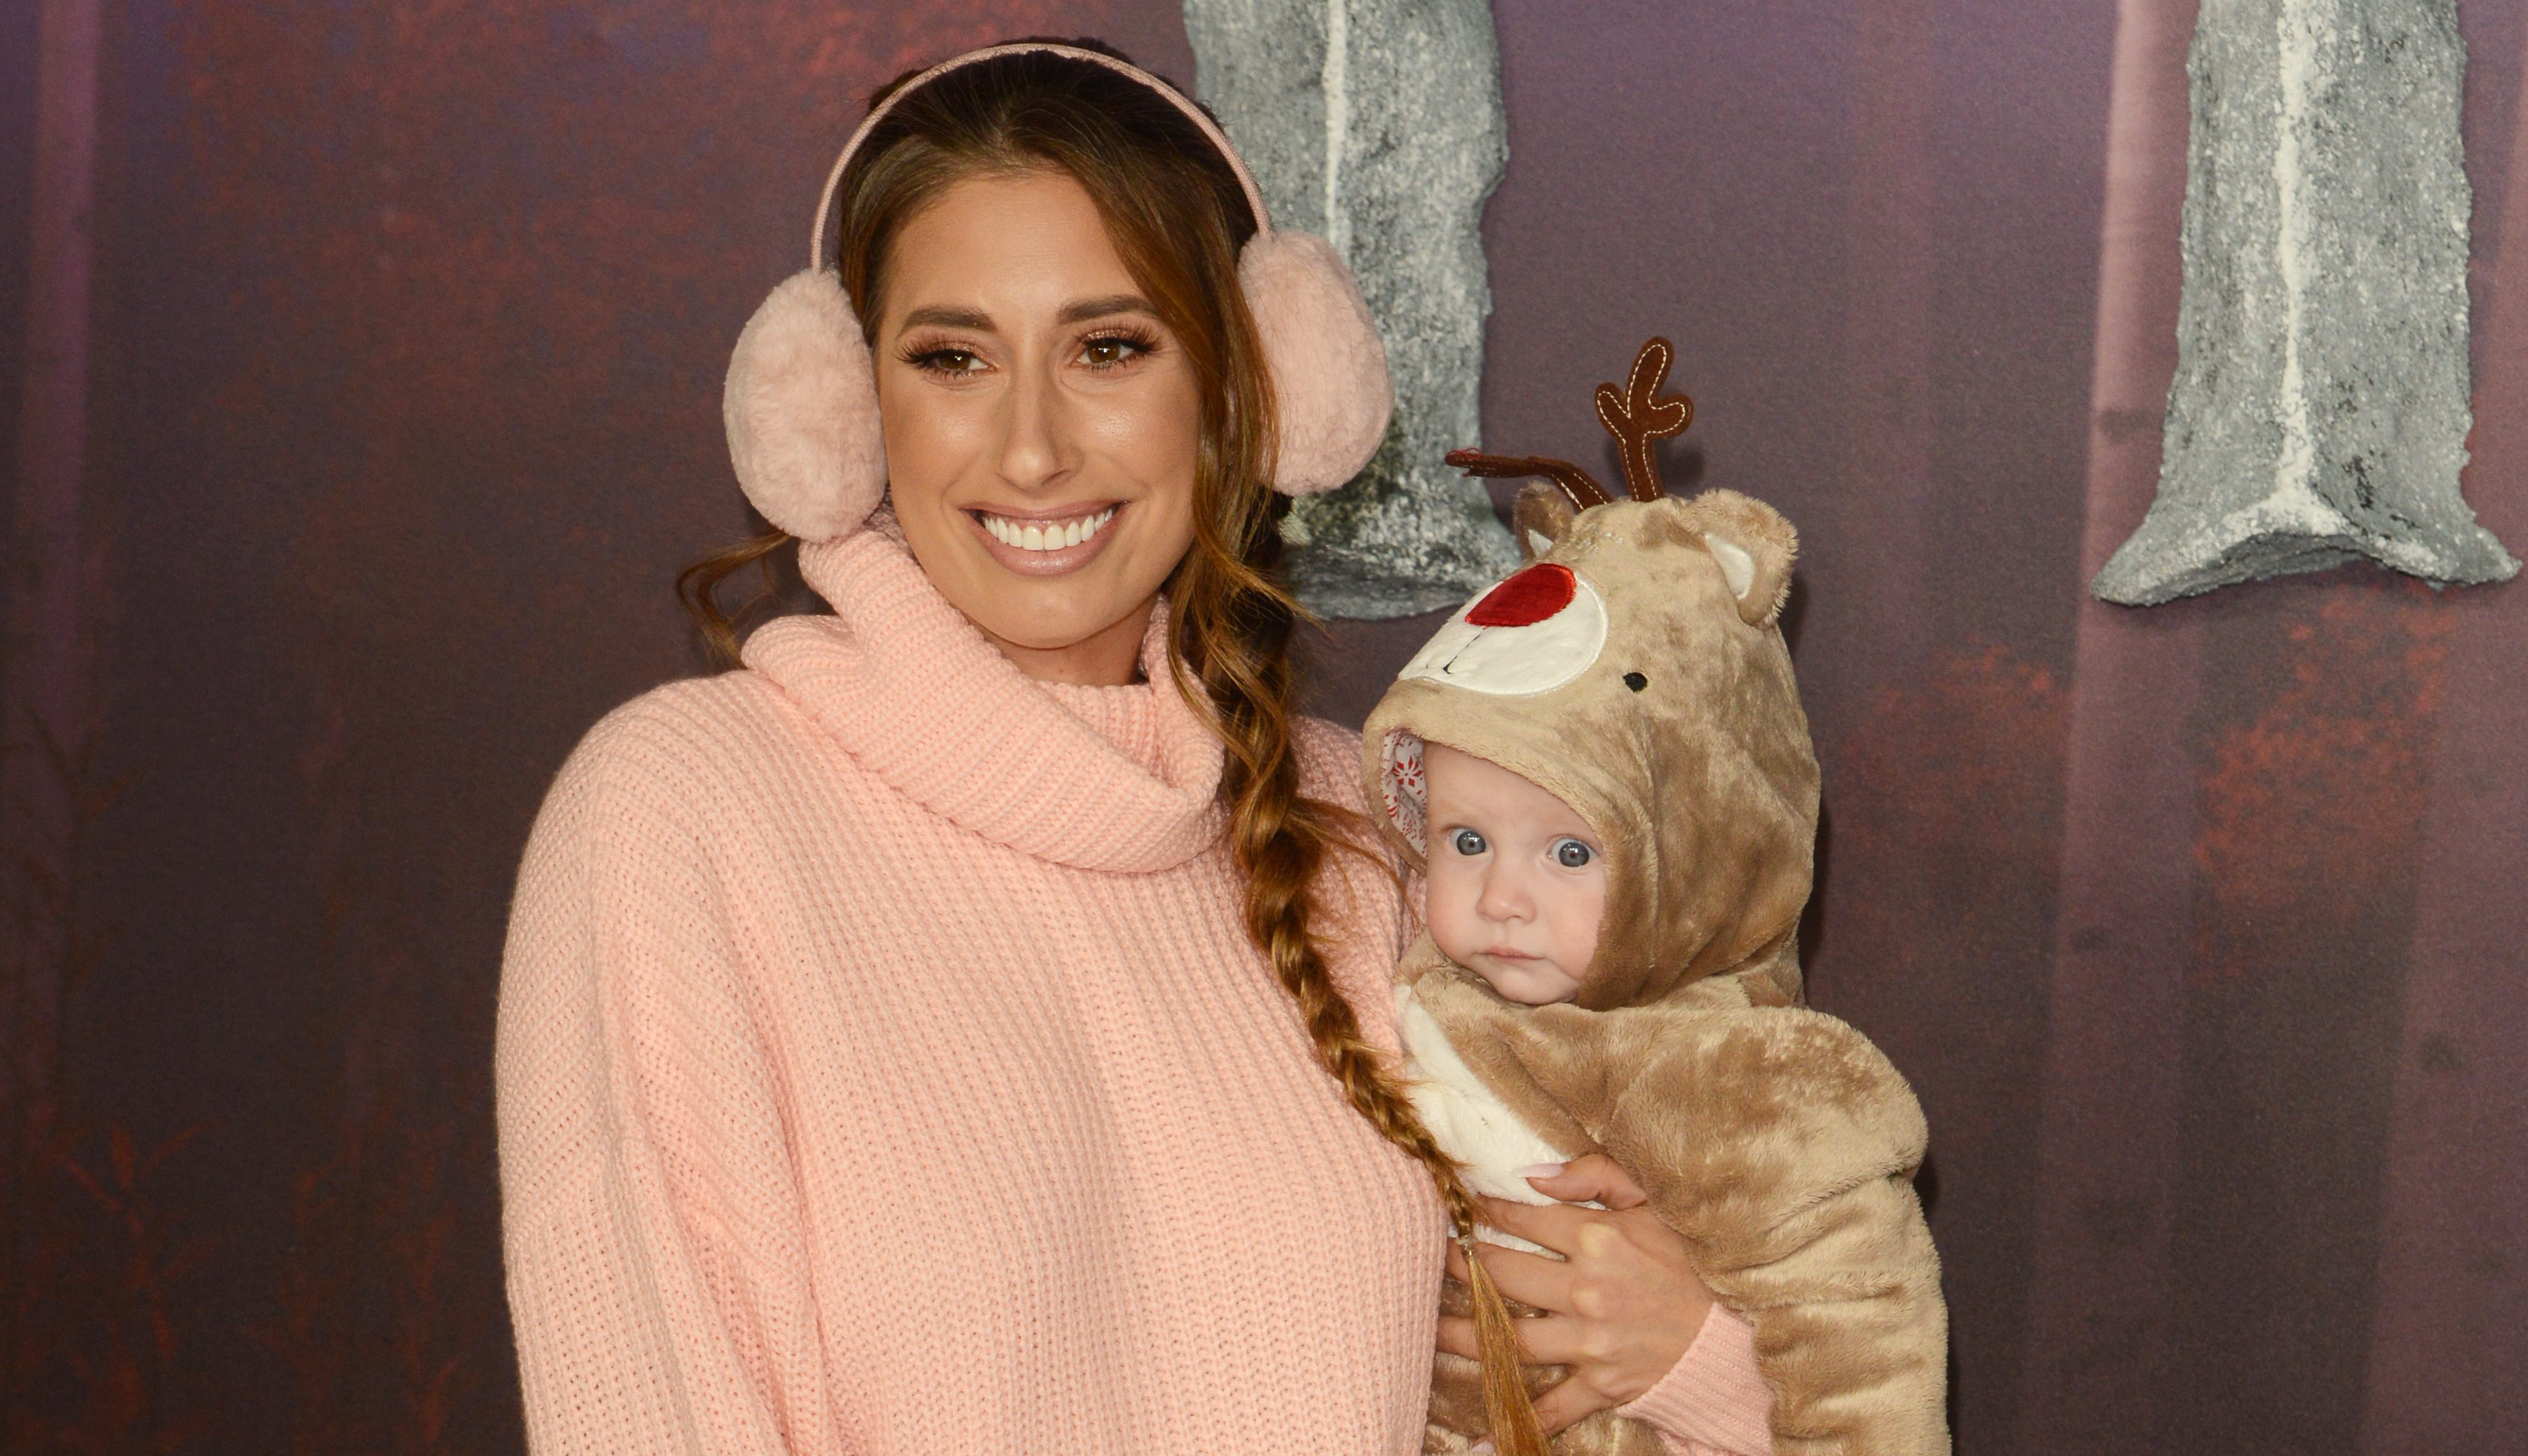 Stacey Solomon and Joe Swash celebrate their first Christmas with baby Rex